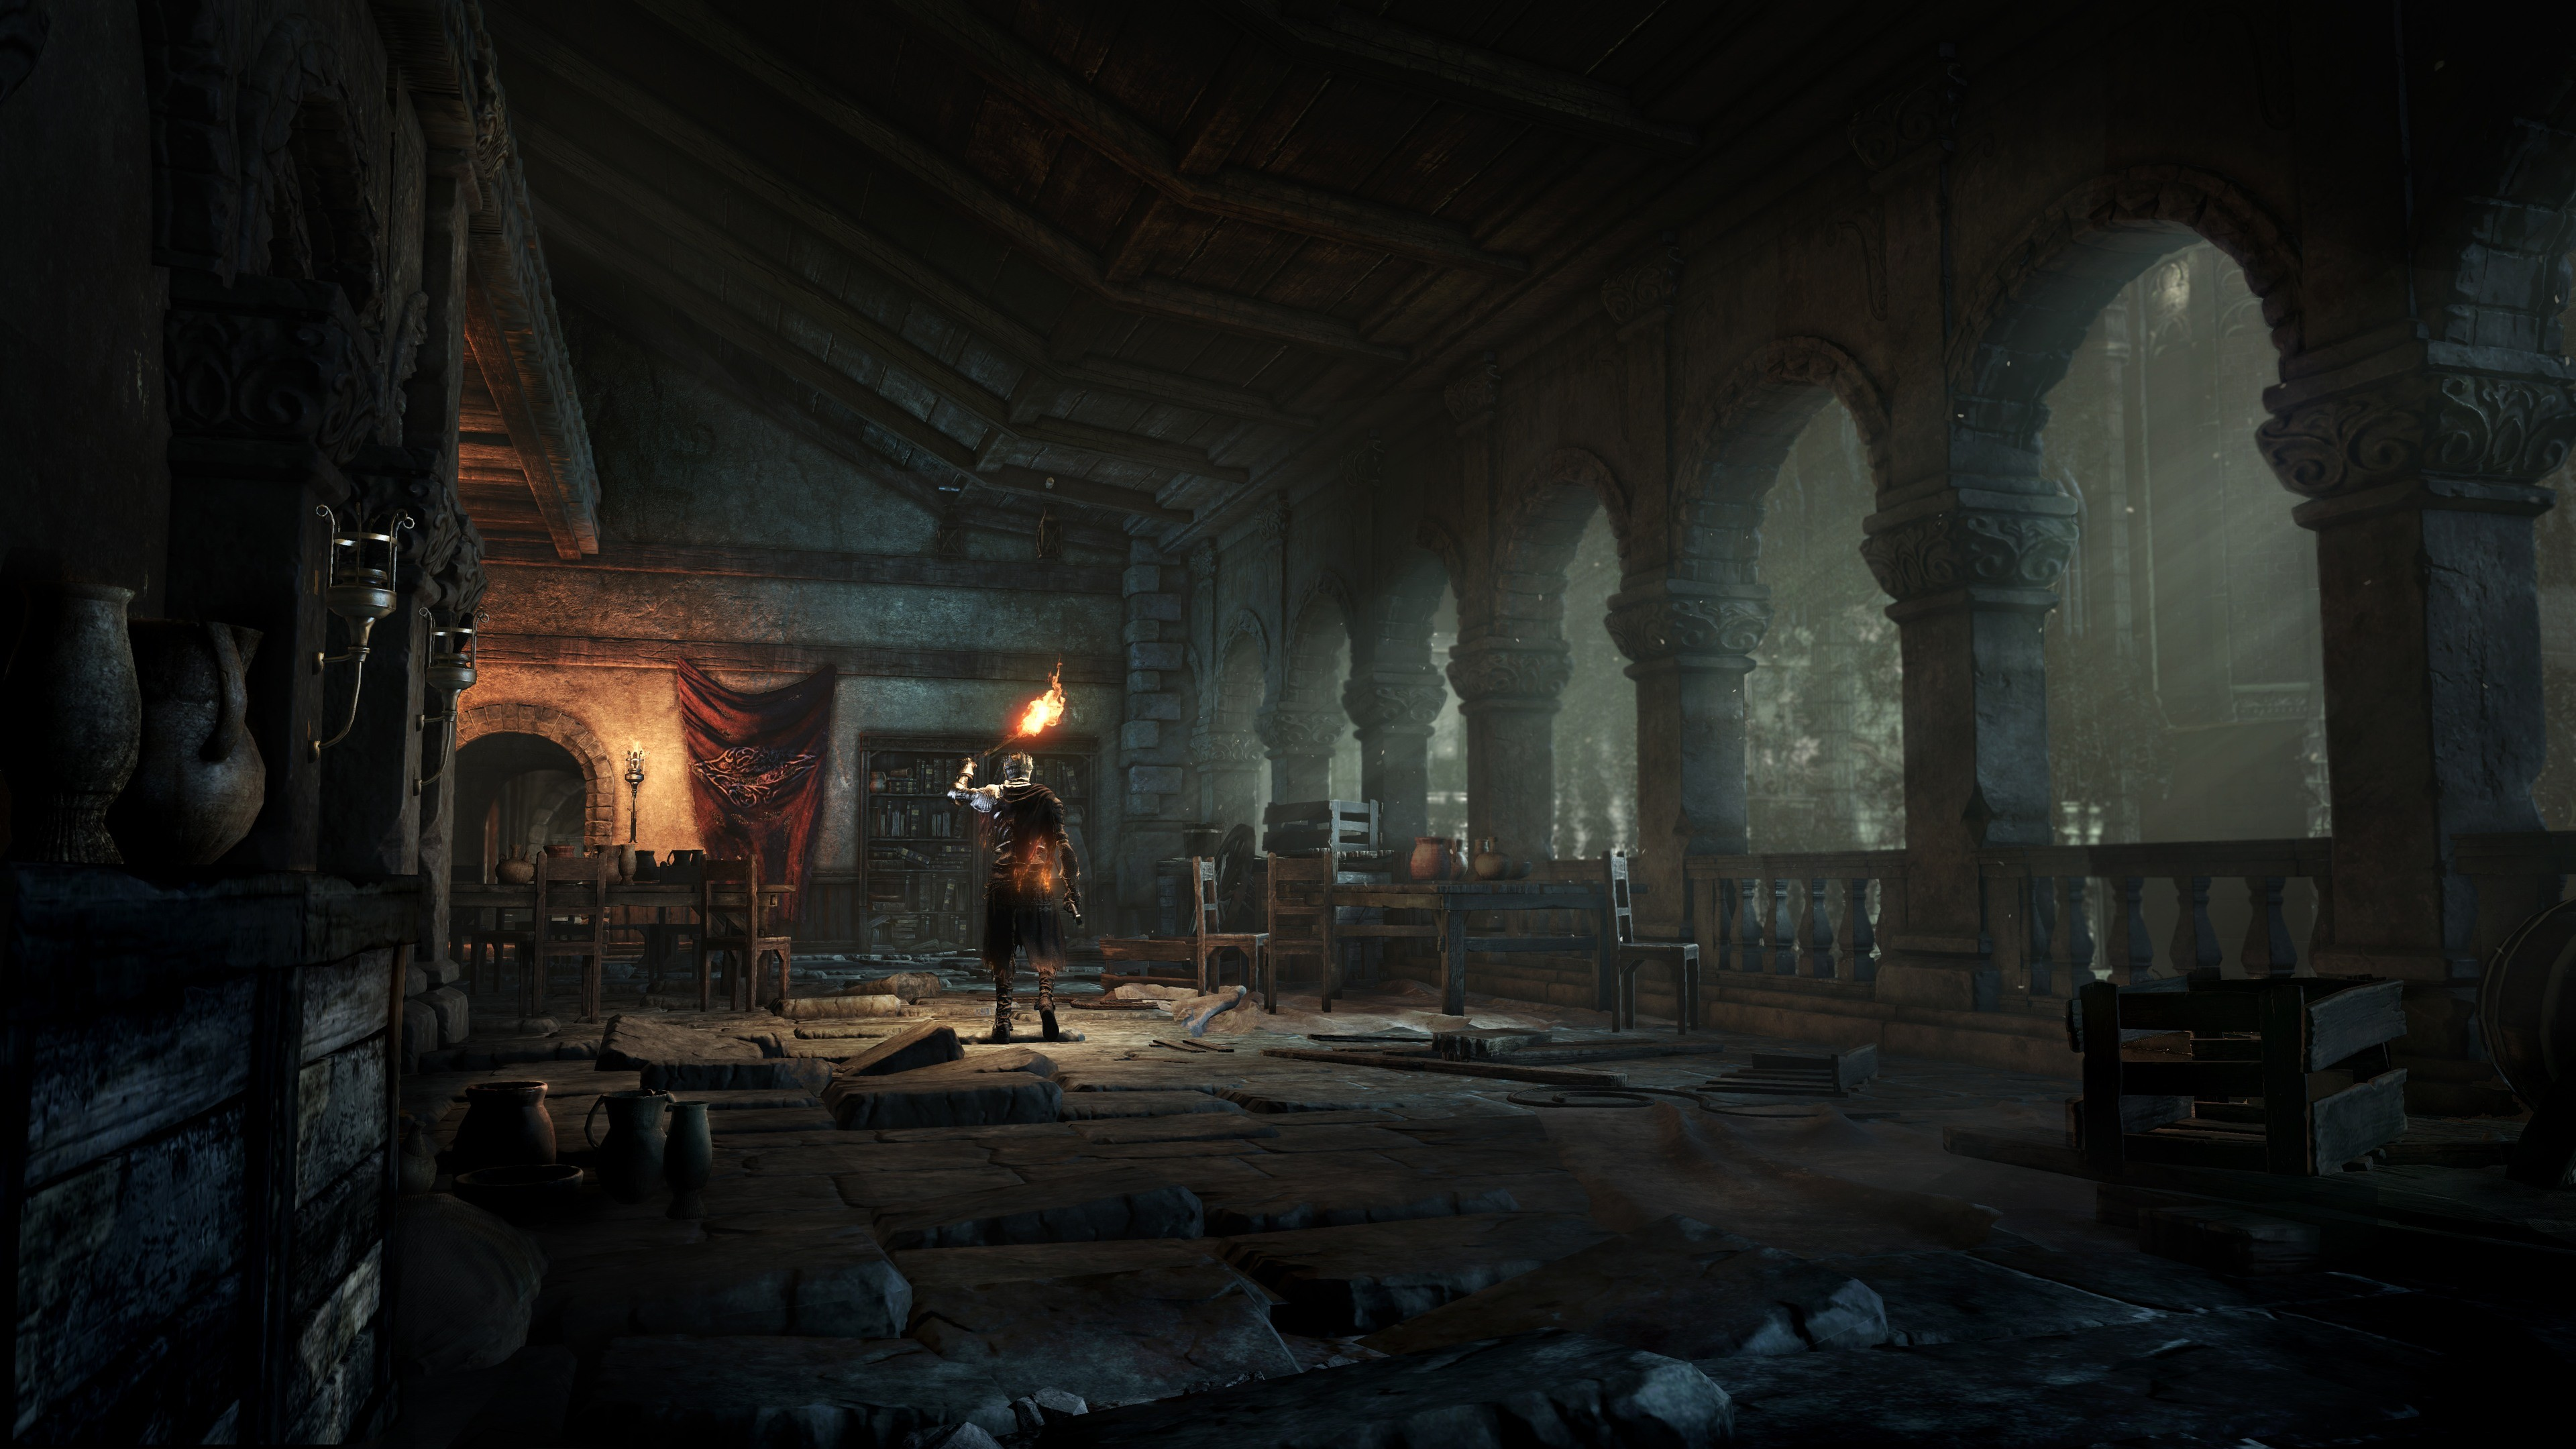 29 2015 By Stephen Comments Off on Dark Souls 3 HD Wallpaper 3840x2160